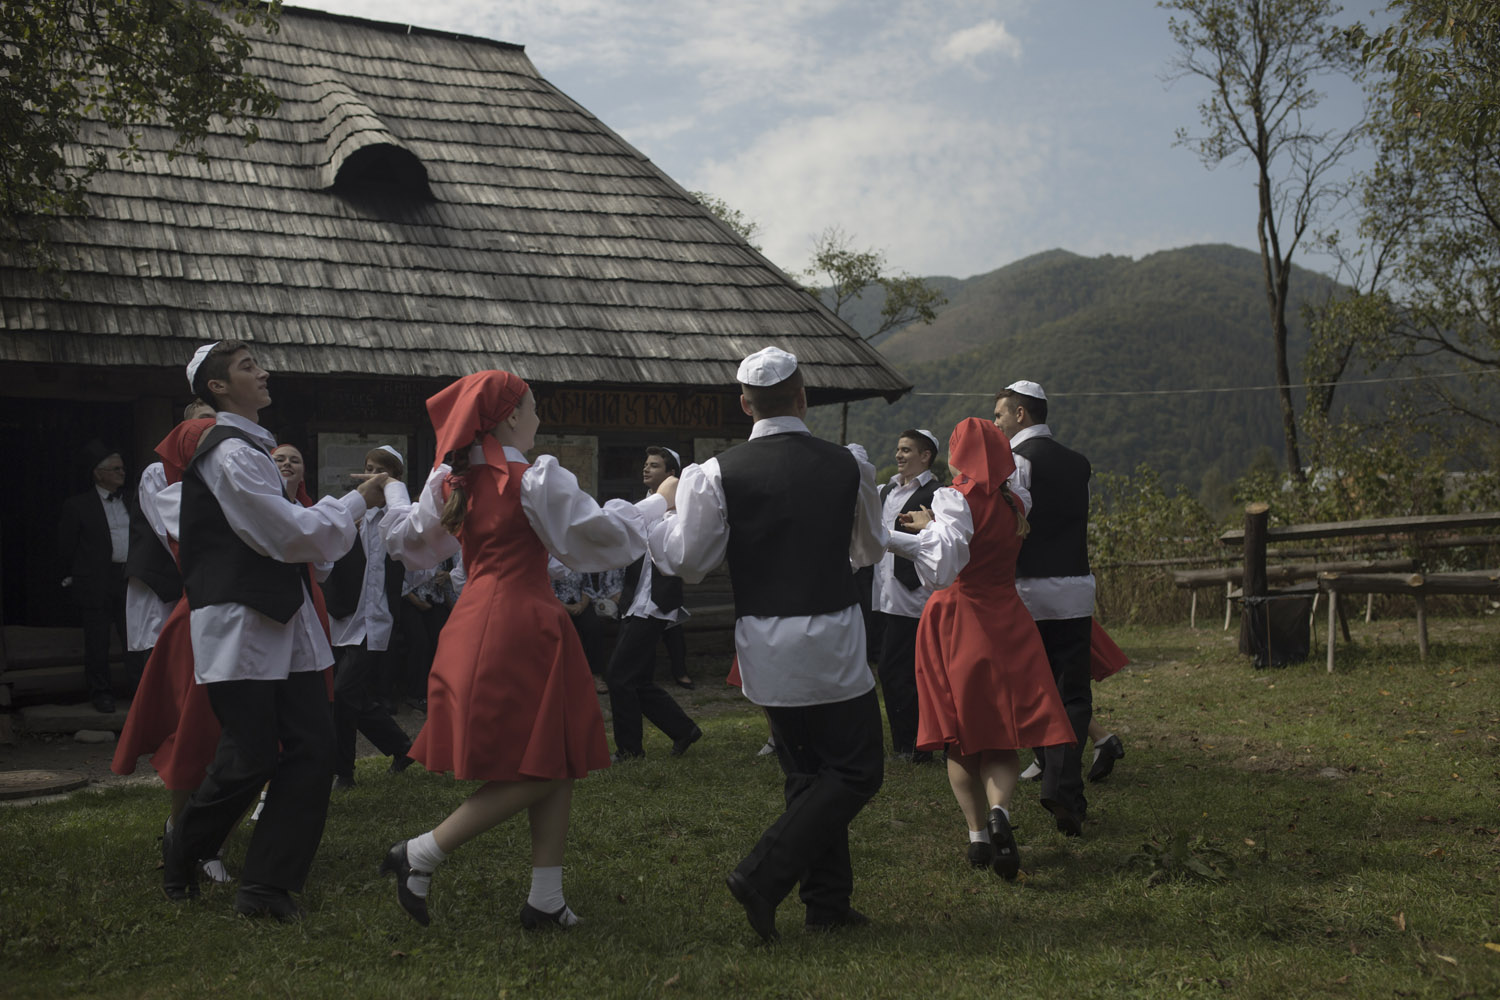 Jewish traditional dances at Kolochava's Jewish Culture Festival, held in the local historical museum, which includes the reconstruction of a synagogue and of a certain Jewish-owned bar that apparently was the town's main hangout spot.